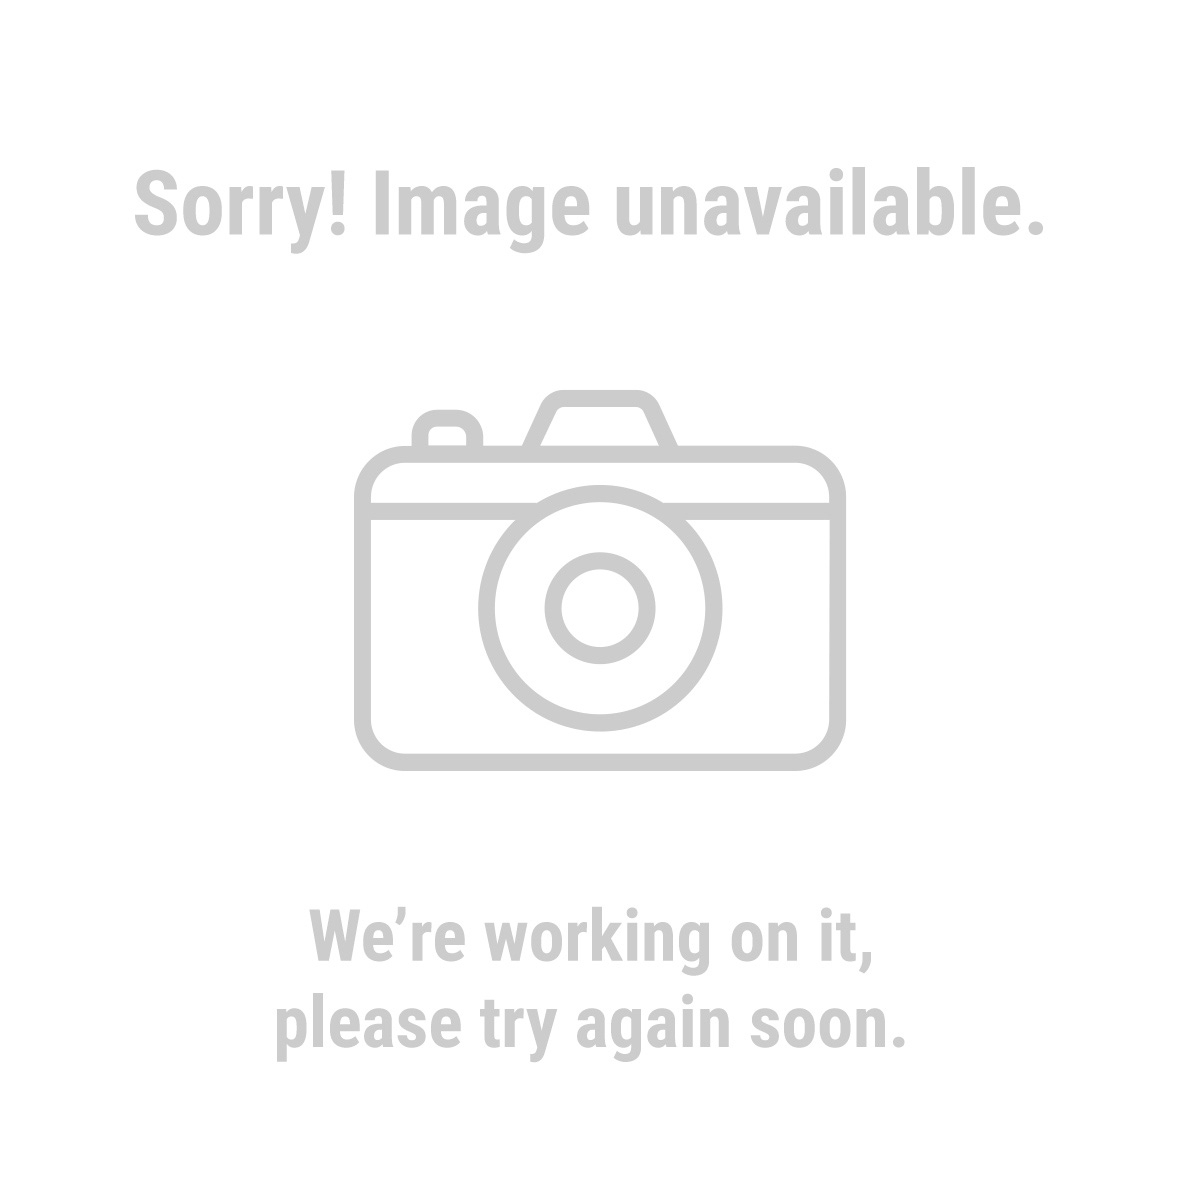 Tile Cutter Pictures